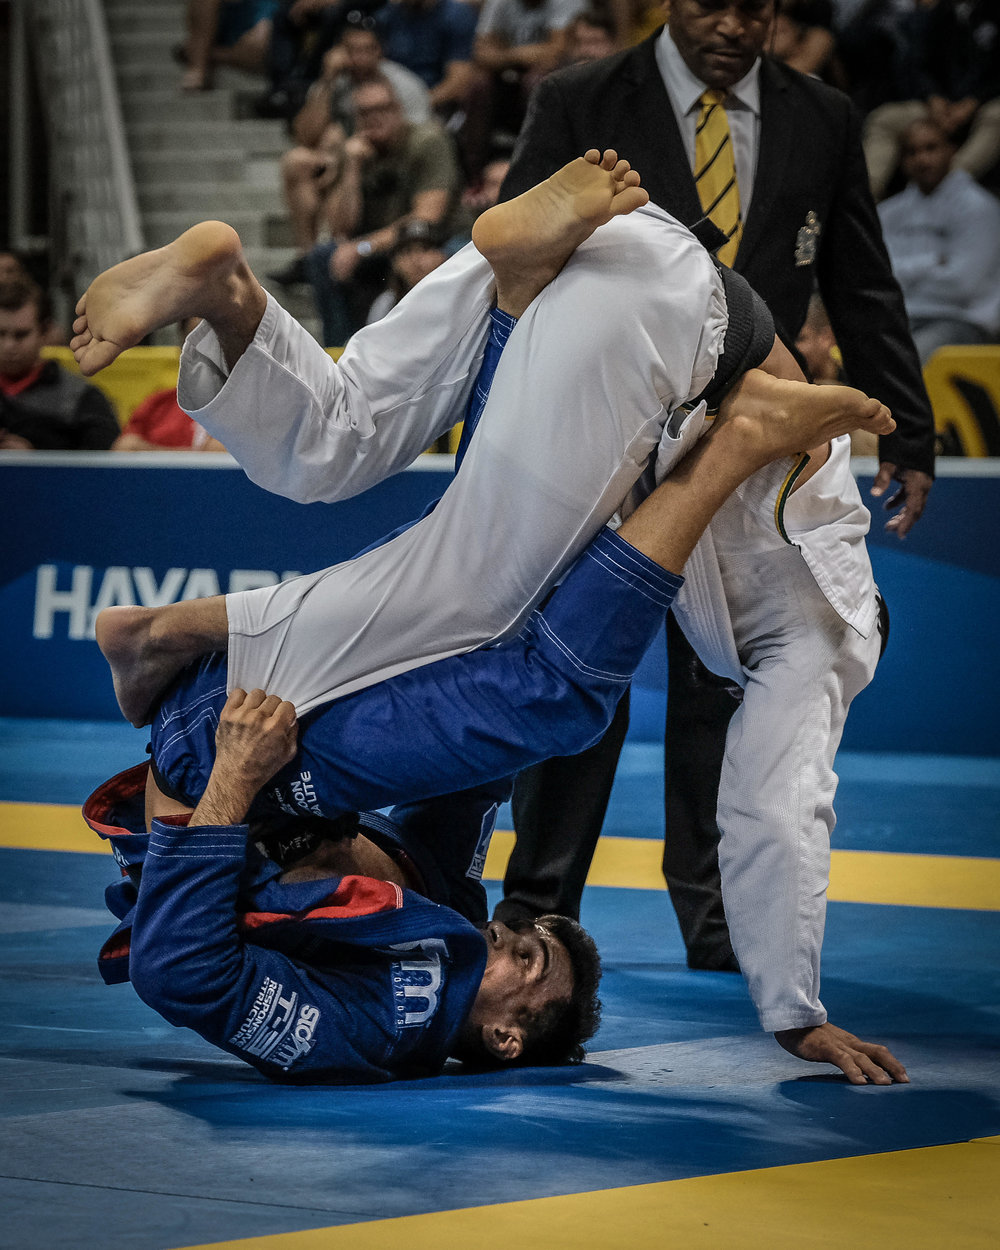 Jiu Jitsu Competition